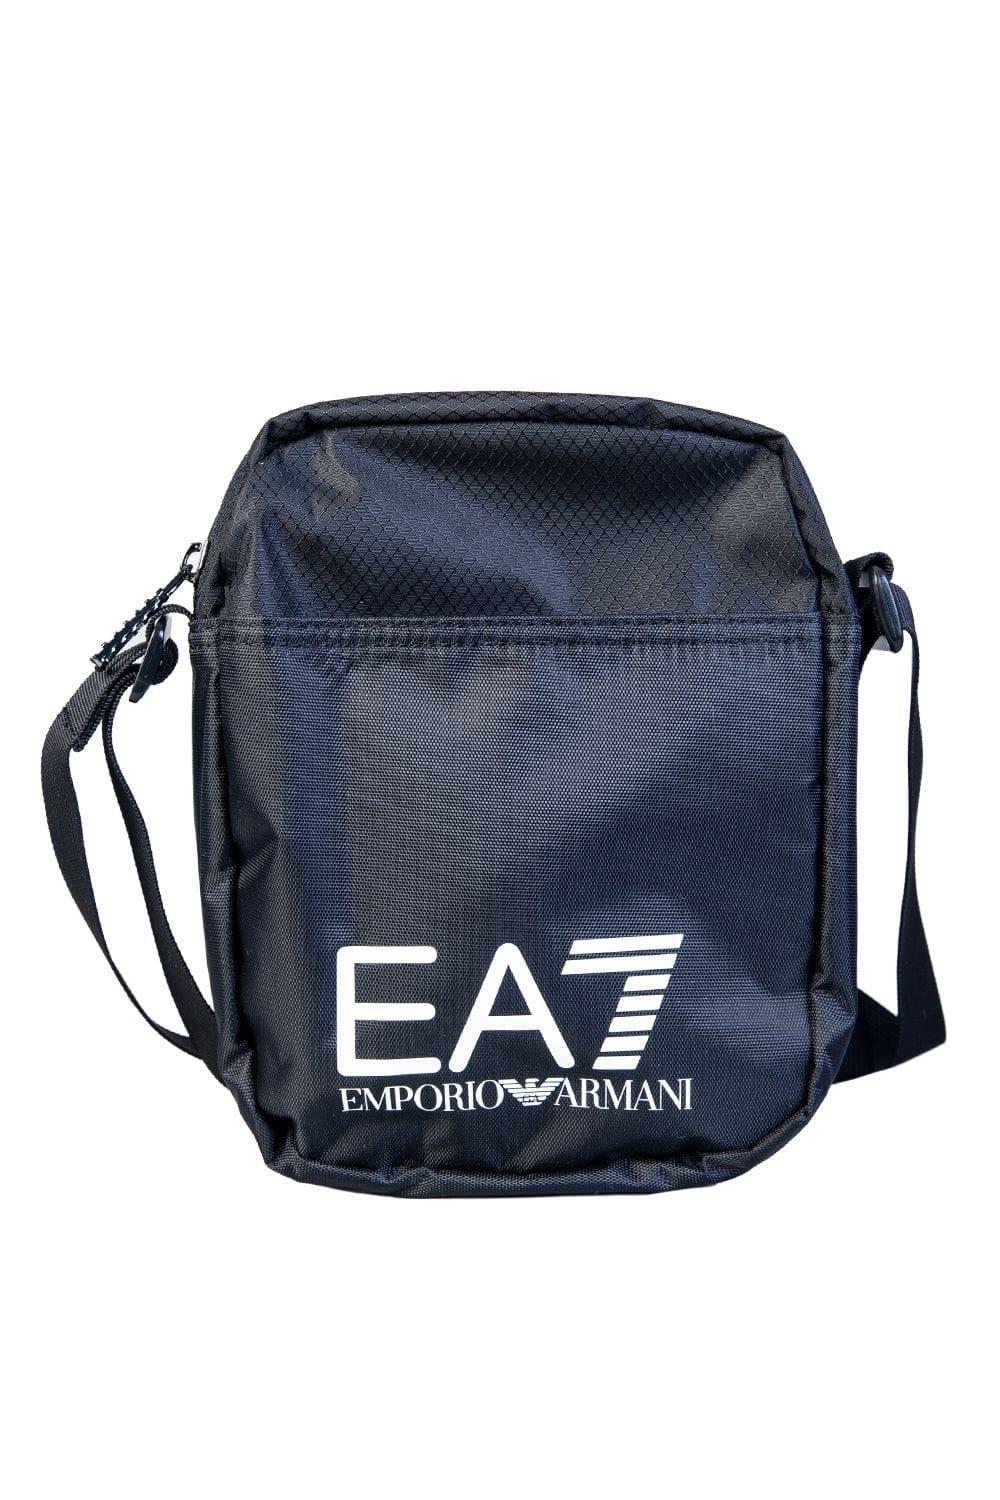 cfc95a616e3d EA7 Emporio Armani Messenger Bag 275658 CC731 - Accessories from Sage  Clothing UK